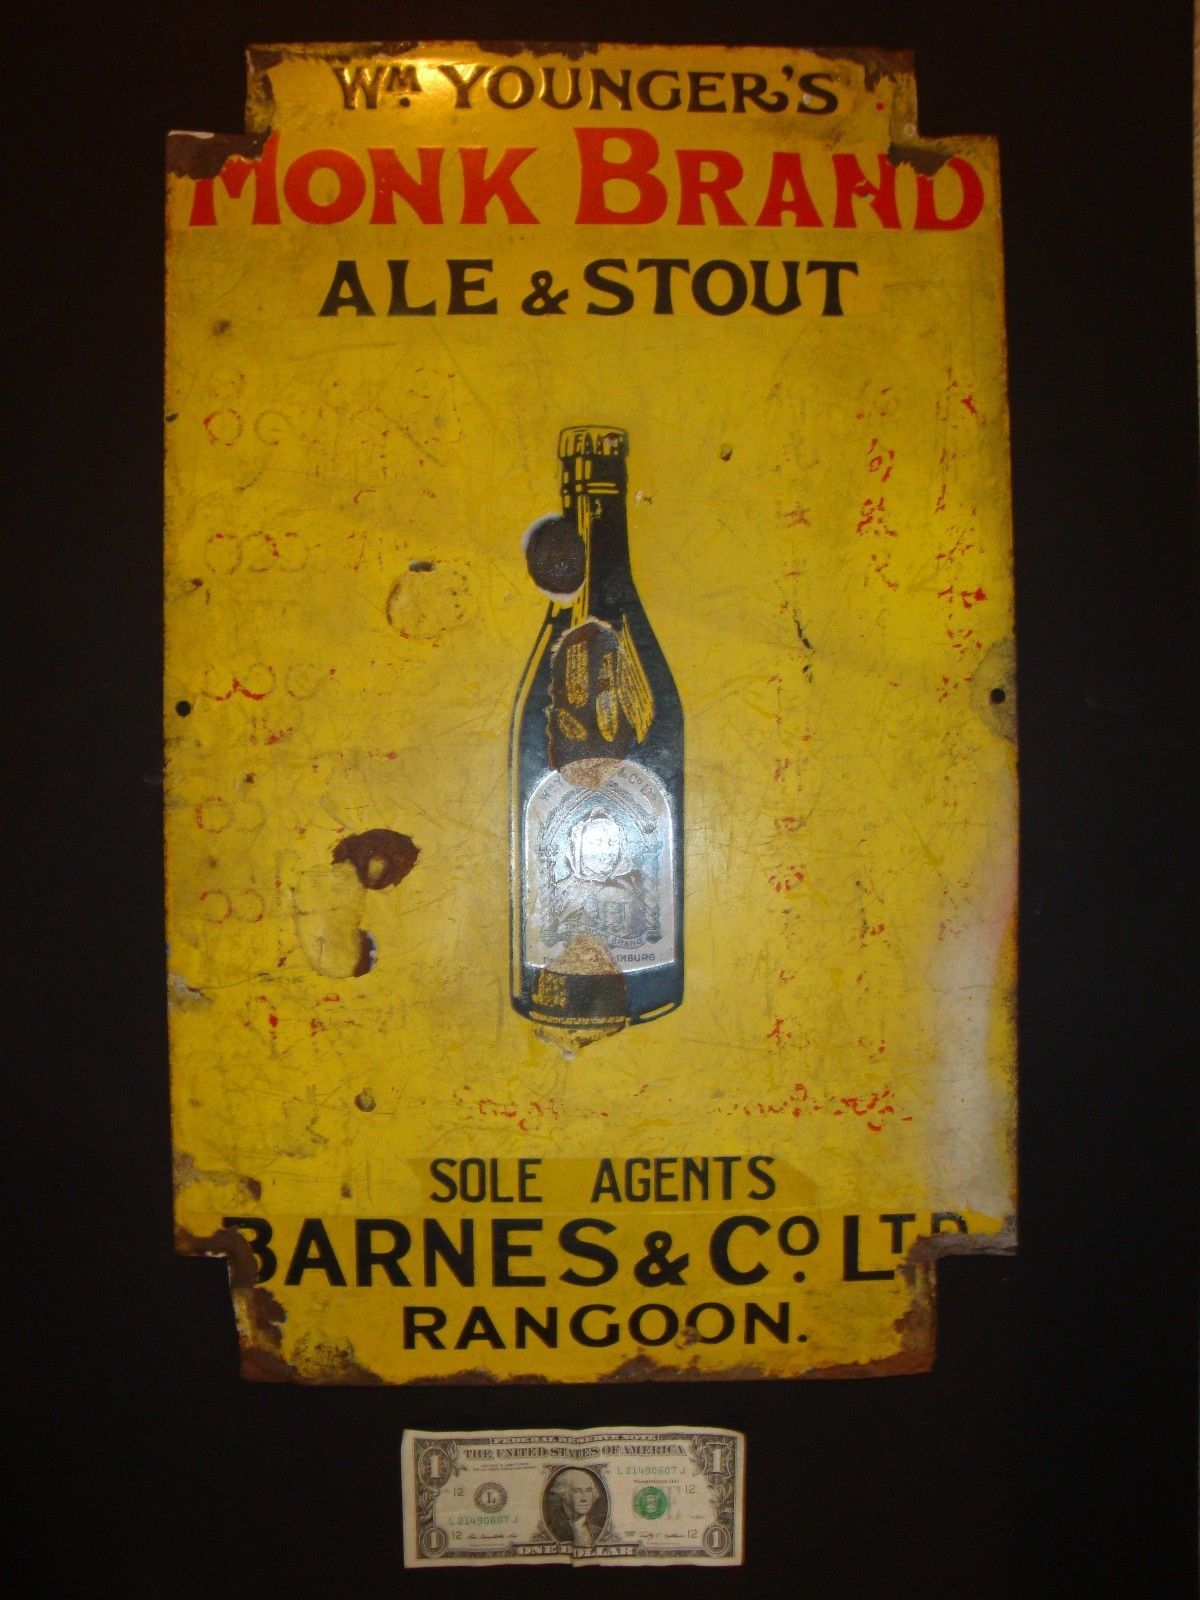 Monk Brand Ale Stout was produced byWilliam Younger's Abbey Brewery in Edinburgh, which closed in 1956 after a merger to become Scottish and Newcastle Breweries (see scan).